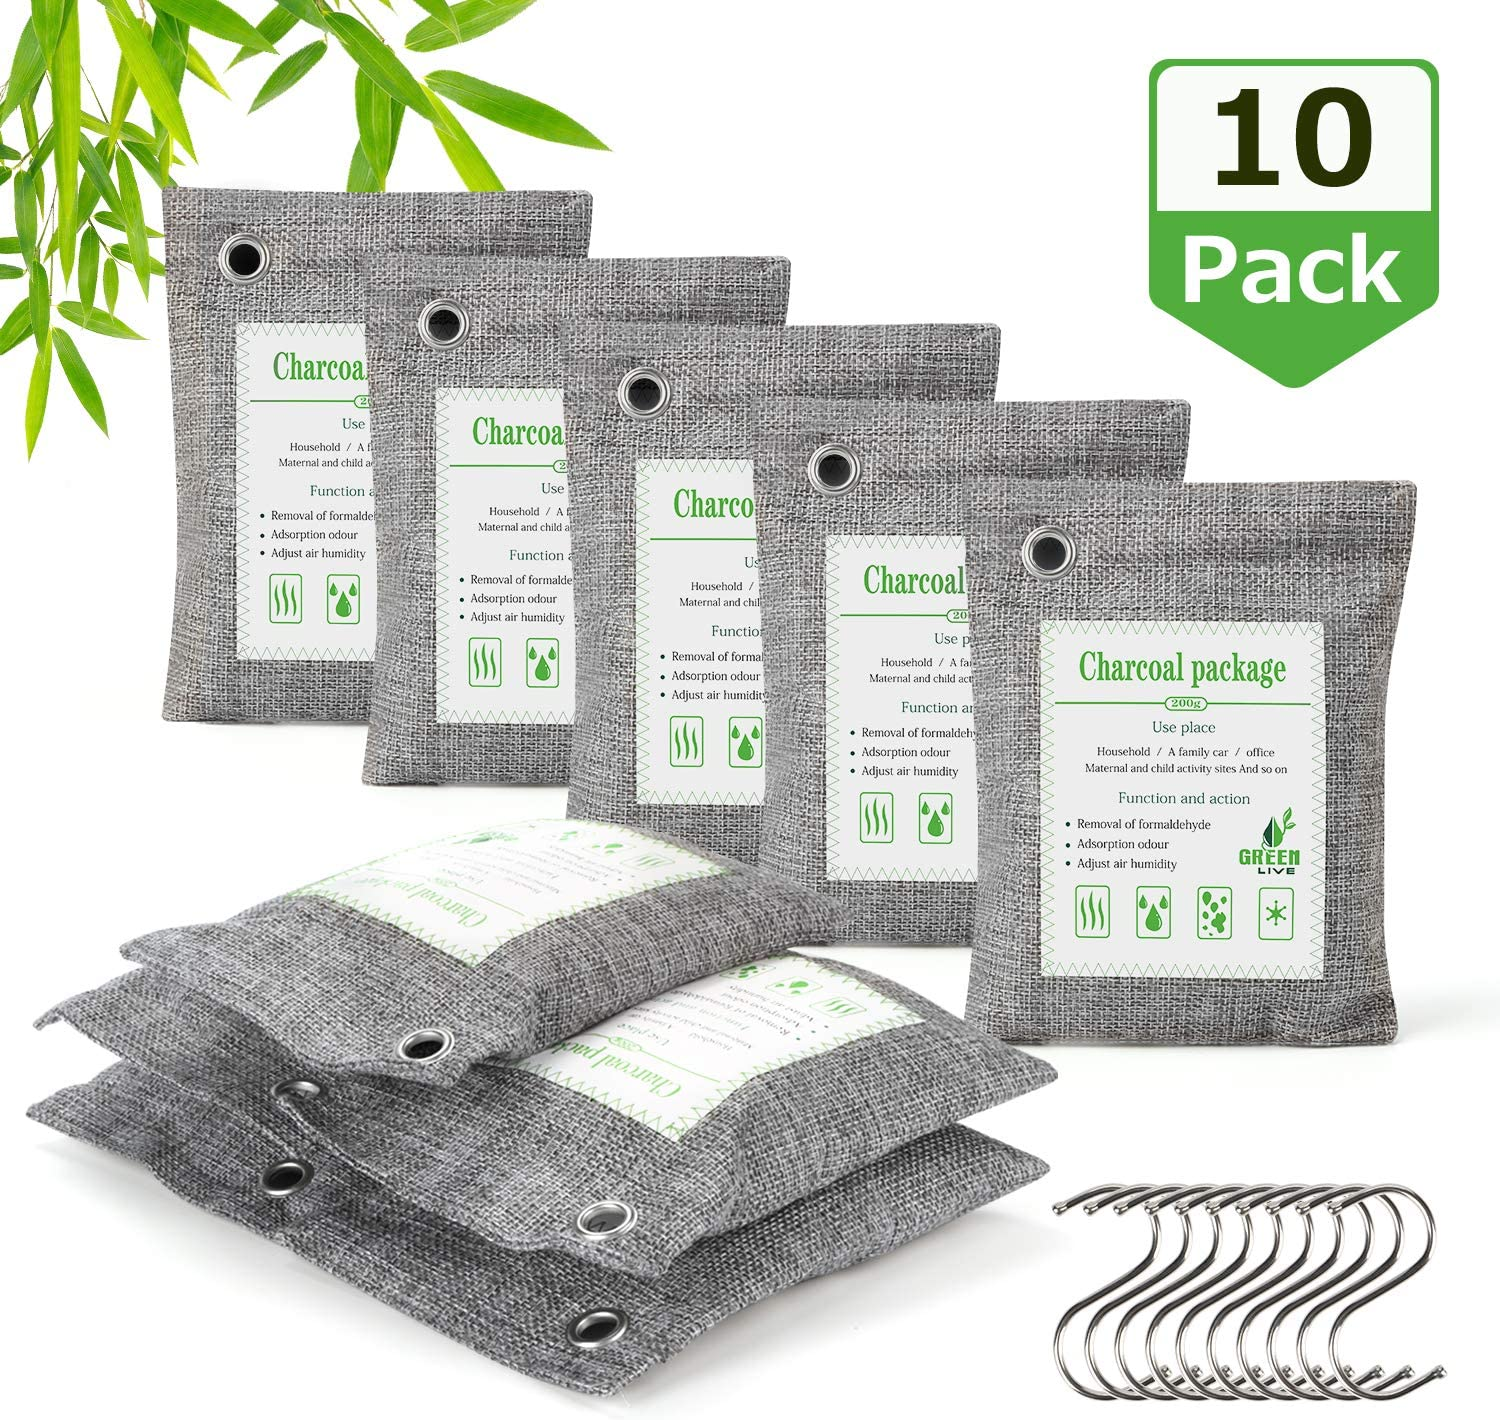 Bamboo Charcoal Air Purifying Bags- AURIDA (10x 200g) Activated Charcoal Bags Odor Absorber Refrigerator Deodorizer Room Freshener Odor Eliminator Bag Remove Odors and Moisture for Pets, Car, Closet